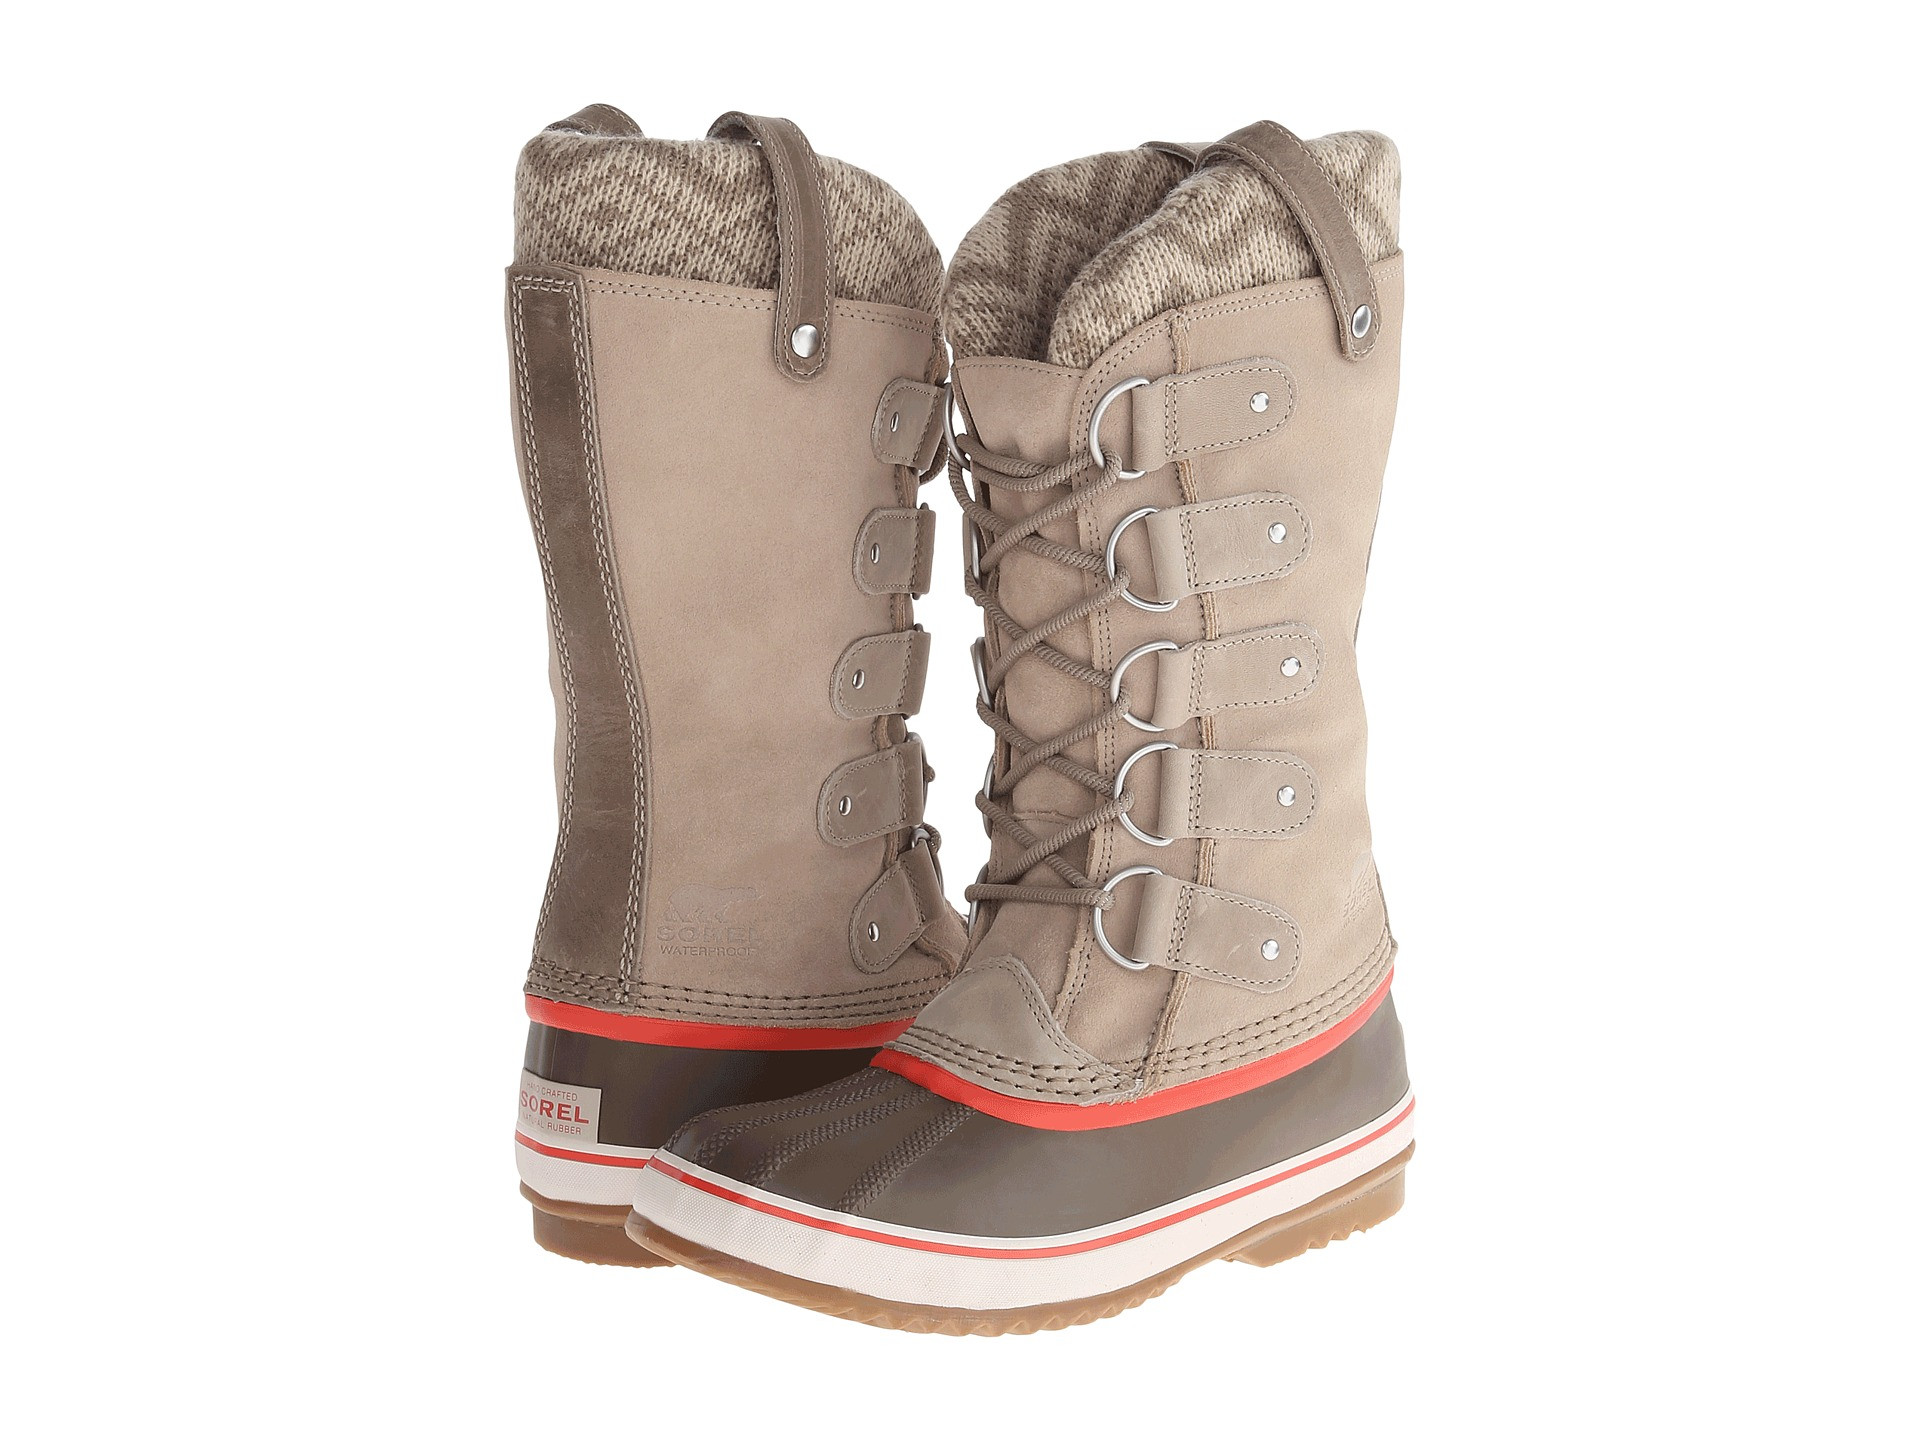 Knit Boots New sorel Joan Arctic™ Knit Zappos Free Shipping Both Of Luxury 48 Photos Knit Boots